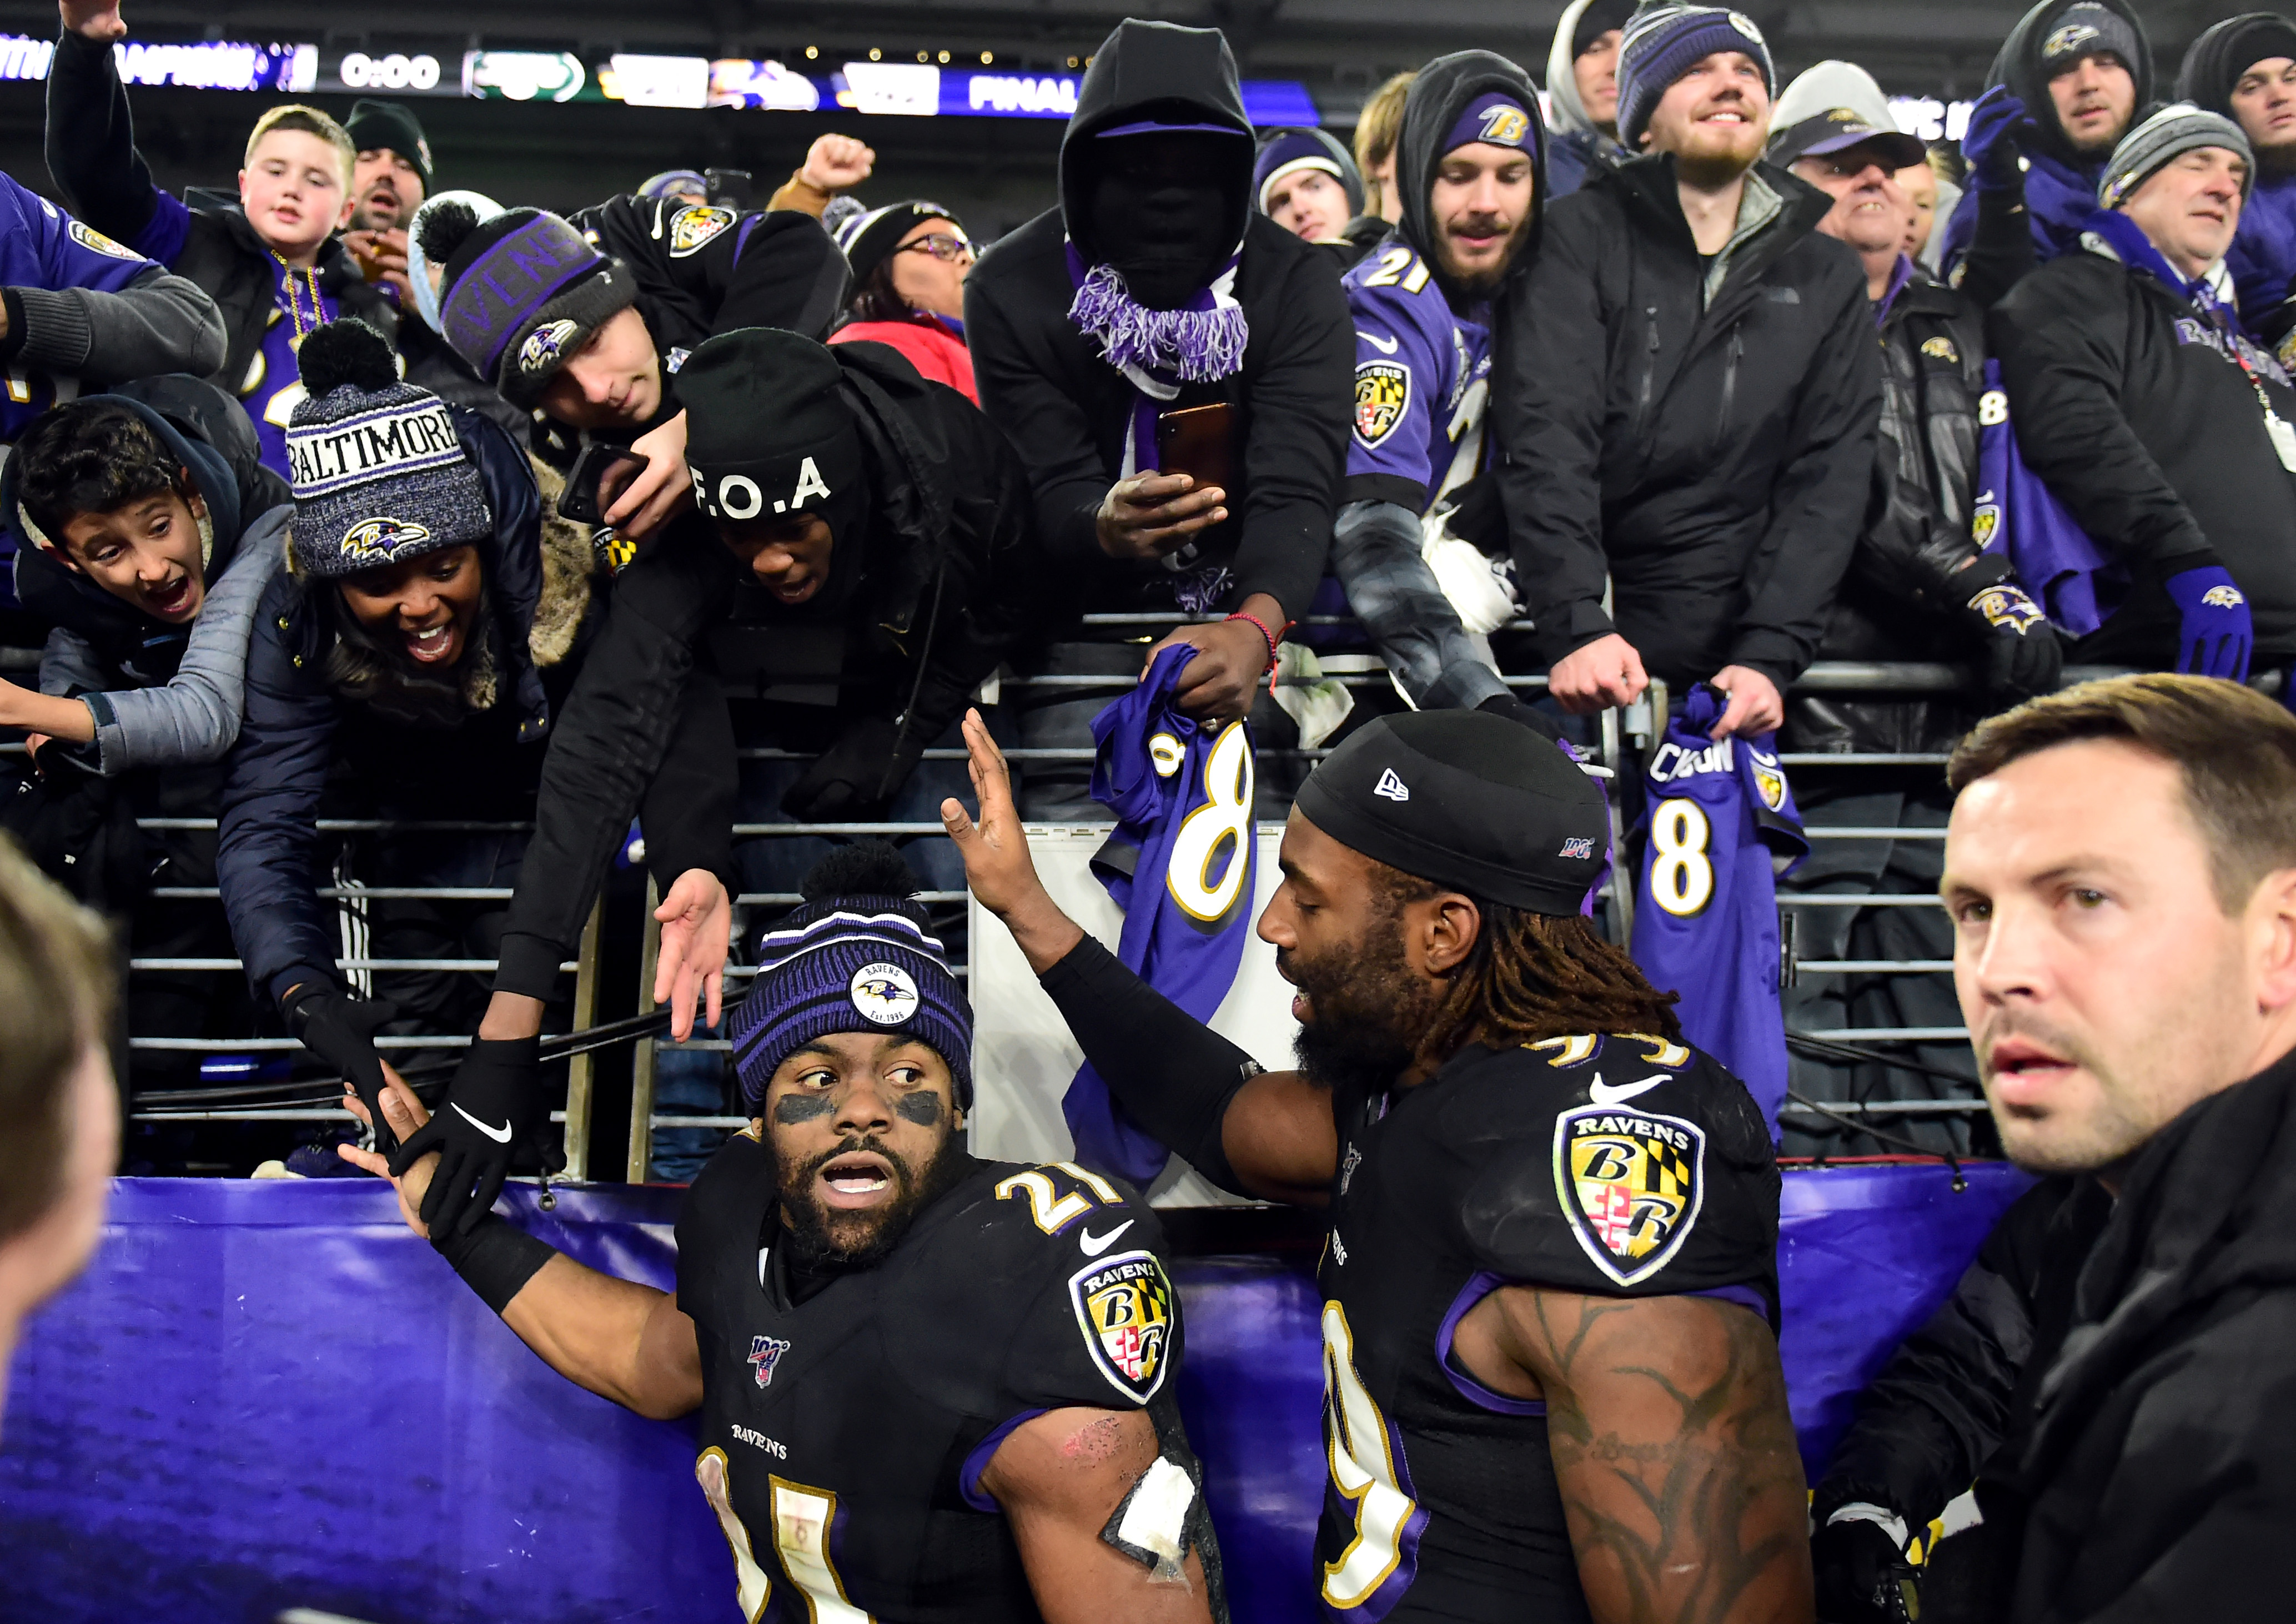 With Division Title In Hand, Ravens Turn Focus to Top Seed, Winning Super Bowl